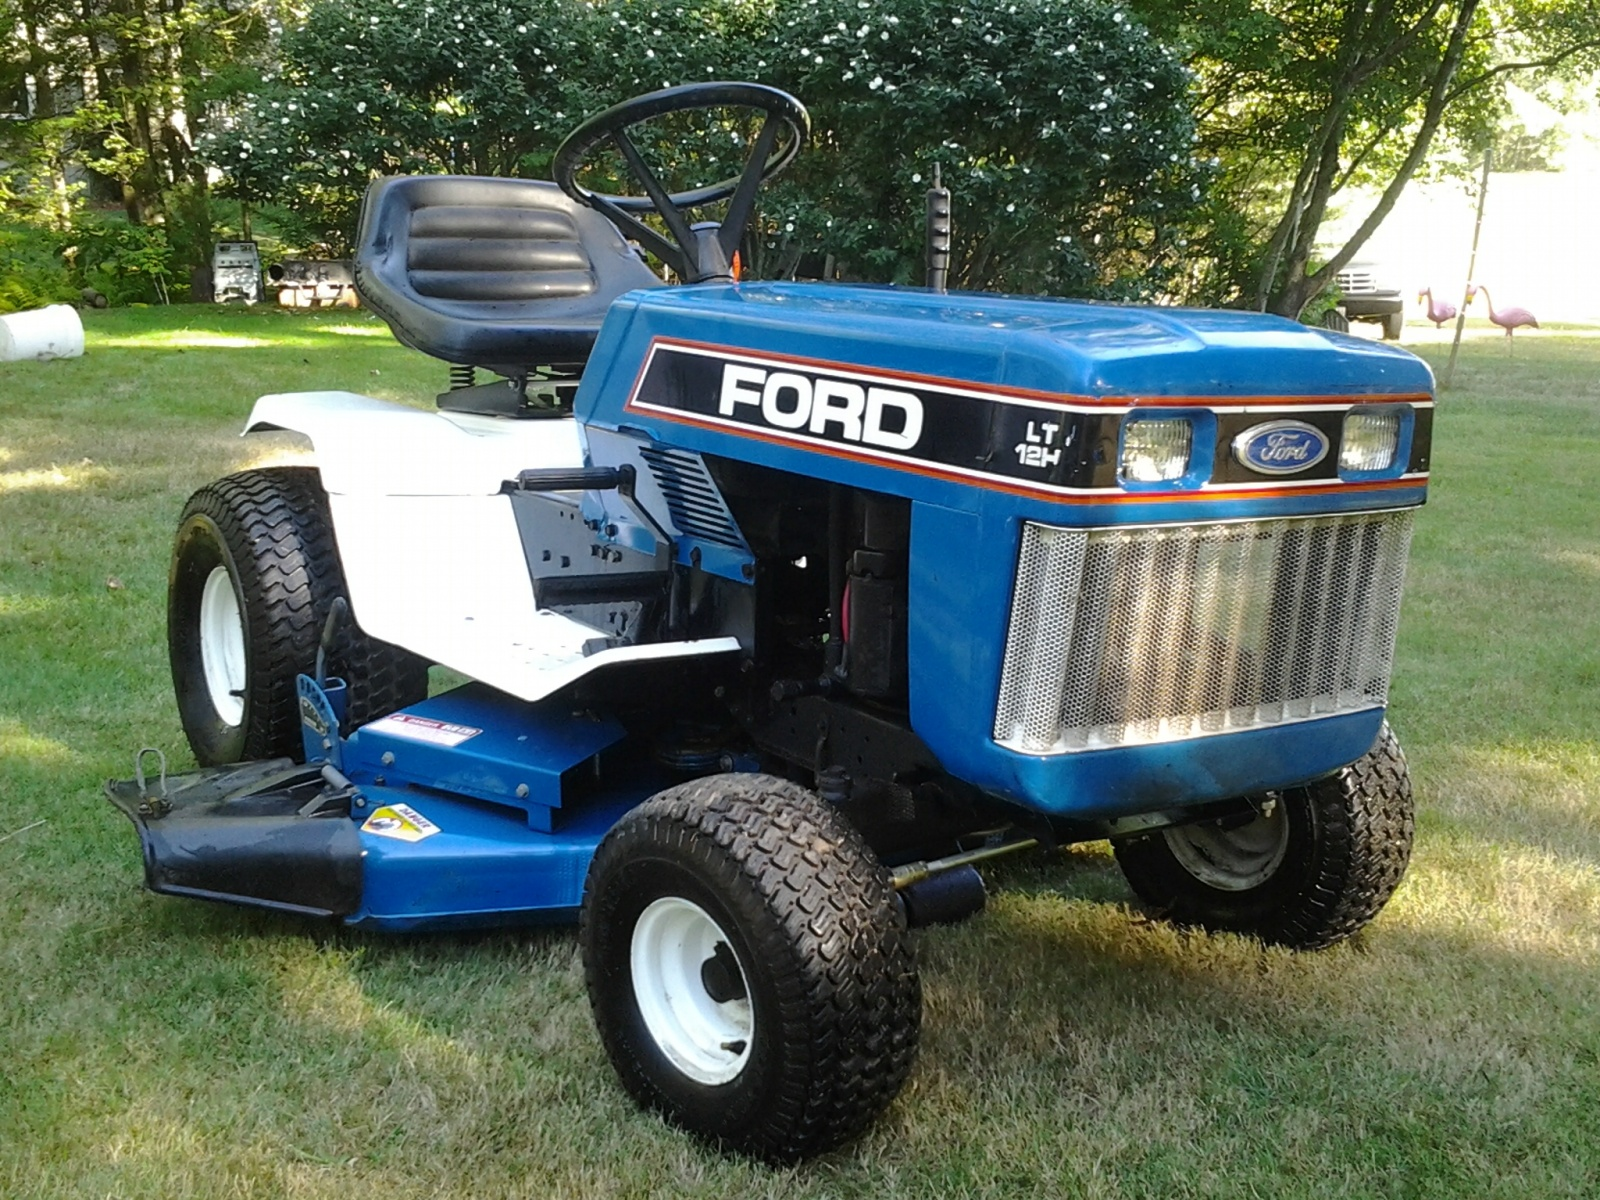 Tiny tractor ford lgt 120 garden tractor for Ford garden tractor